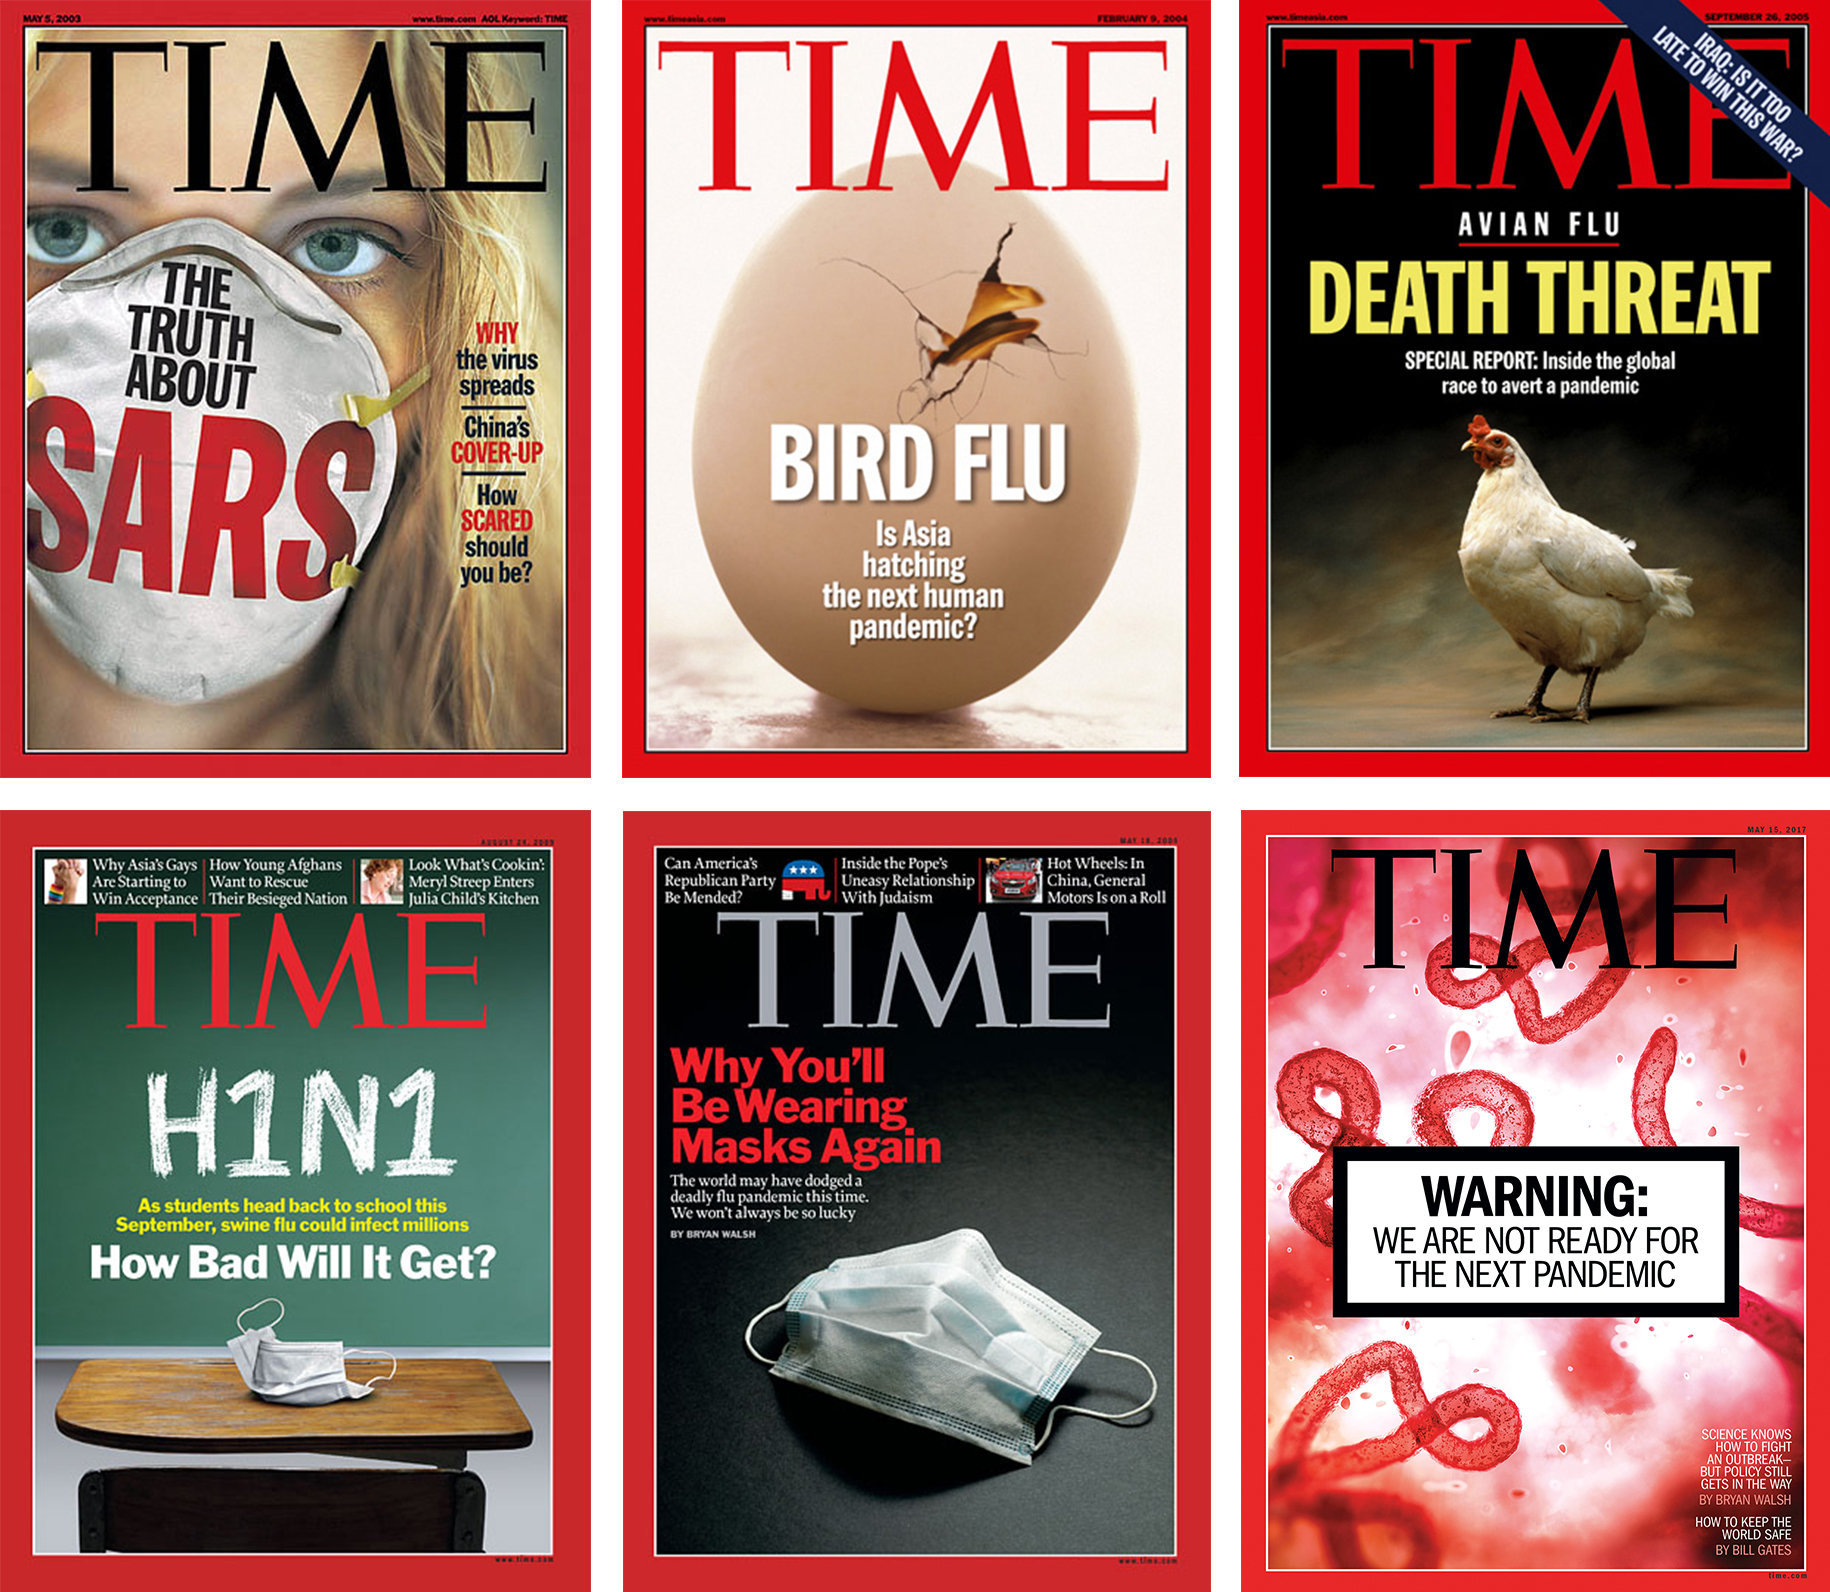 TIME covers from 2003, 2004, 2005, 2007, 2009, and 2017, in order